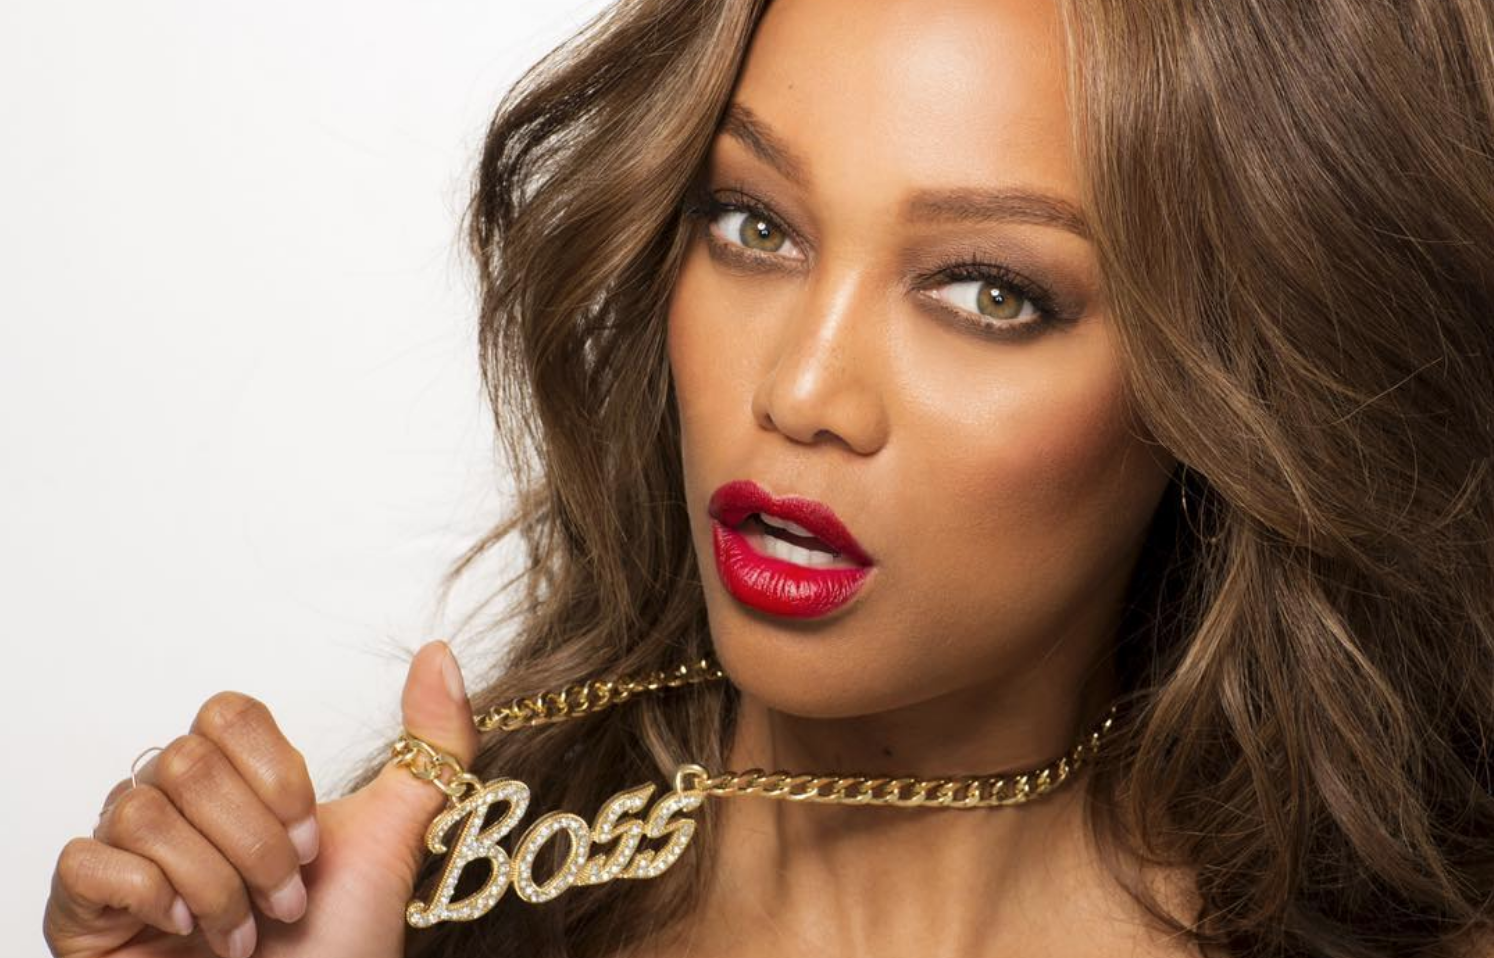 2019 Tyra Banks nudes (93 foto and video), Pussy, Leaked, Feet, butt 2018